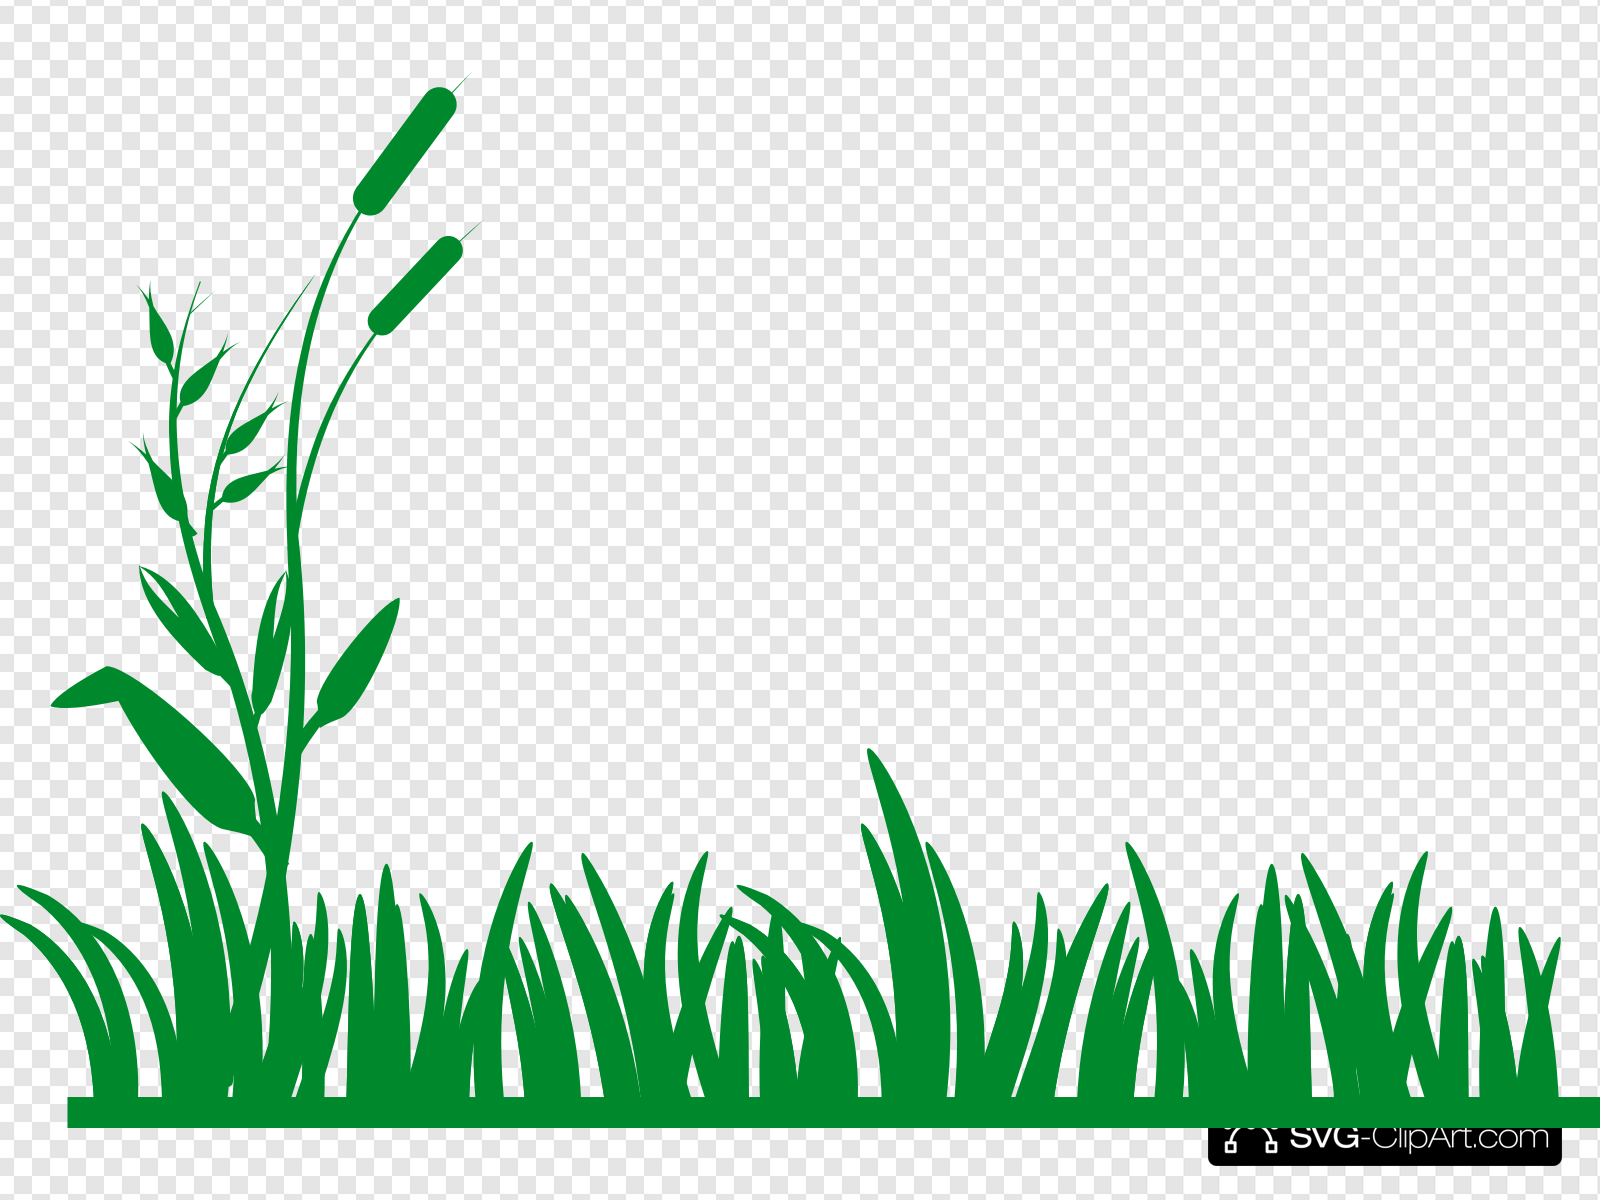 Grass Background Clip art, Icon and SVG.